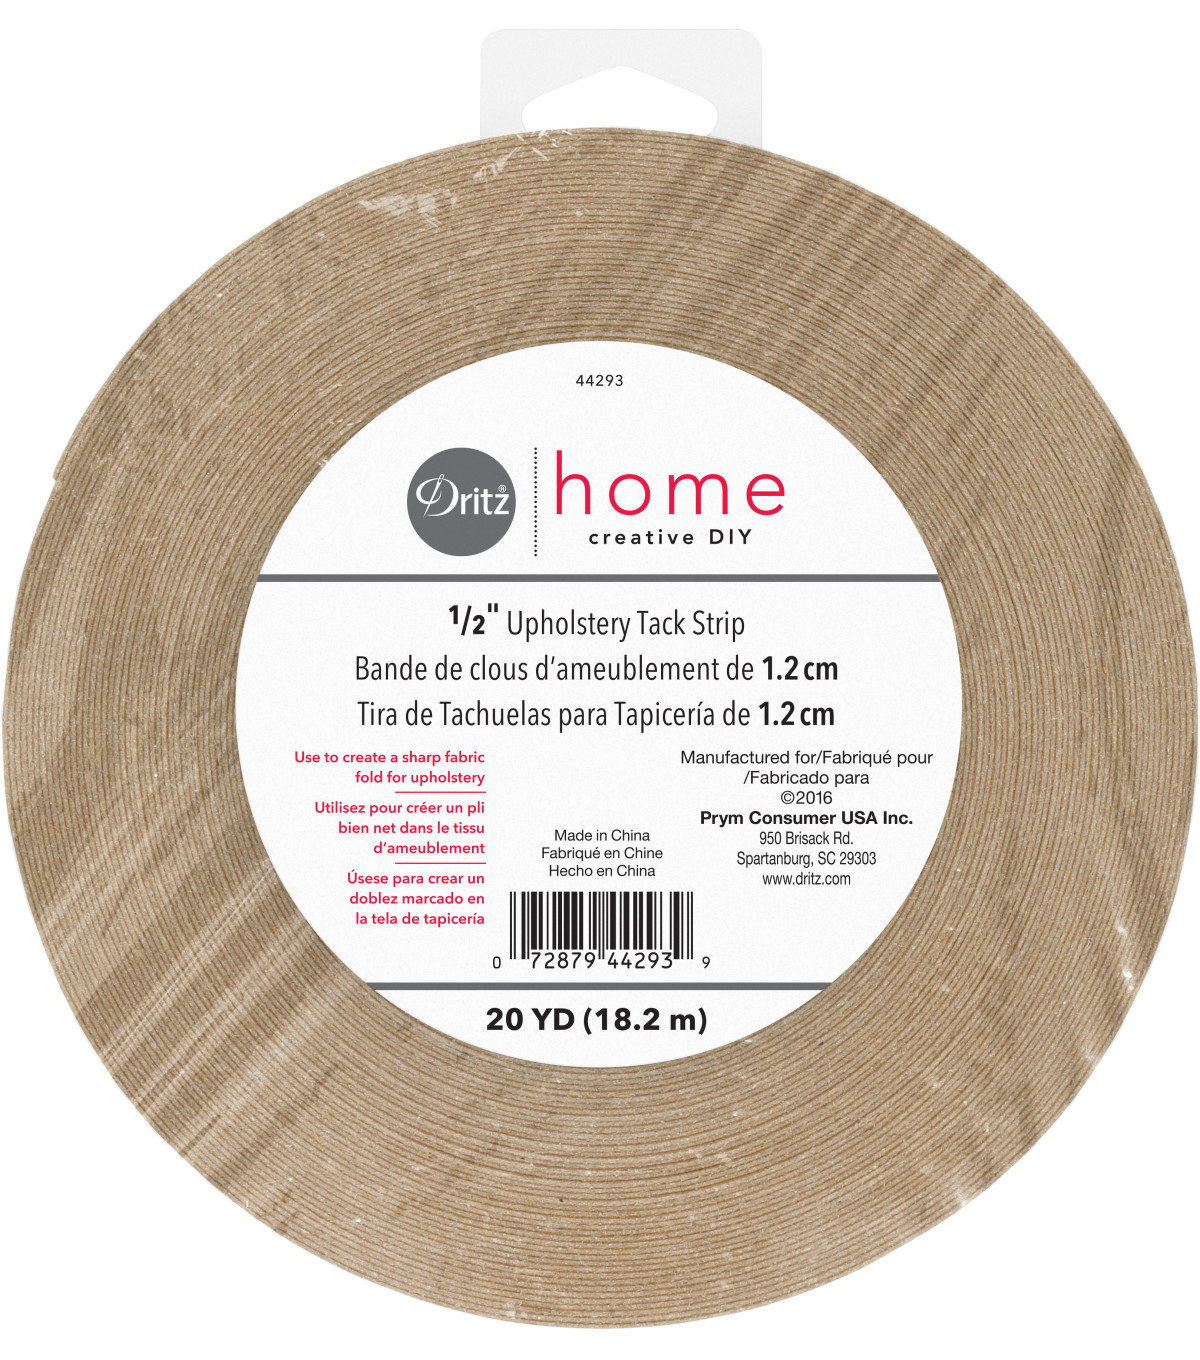 Dritz Home 0.5\u0022 Wide x 20Yds Upholstery Tack Strip Natural